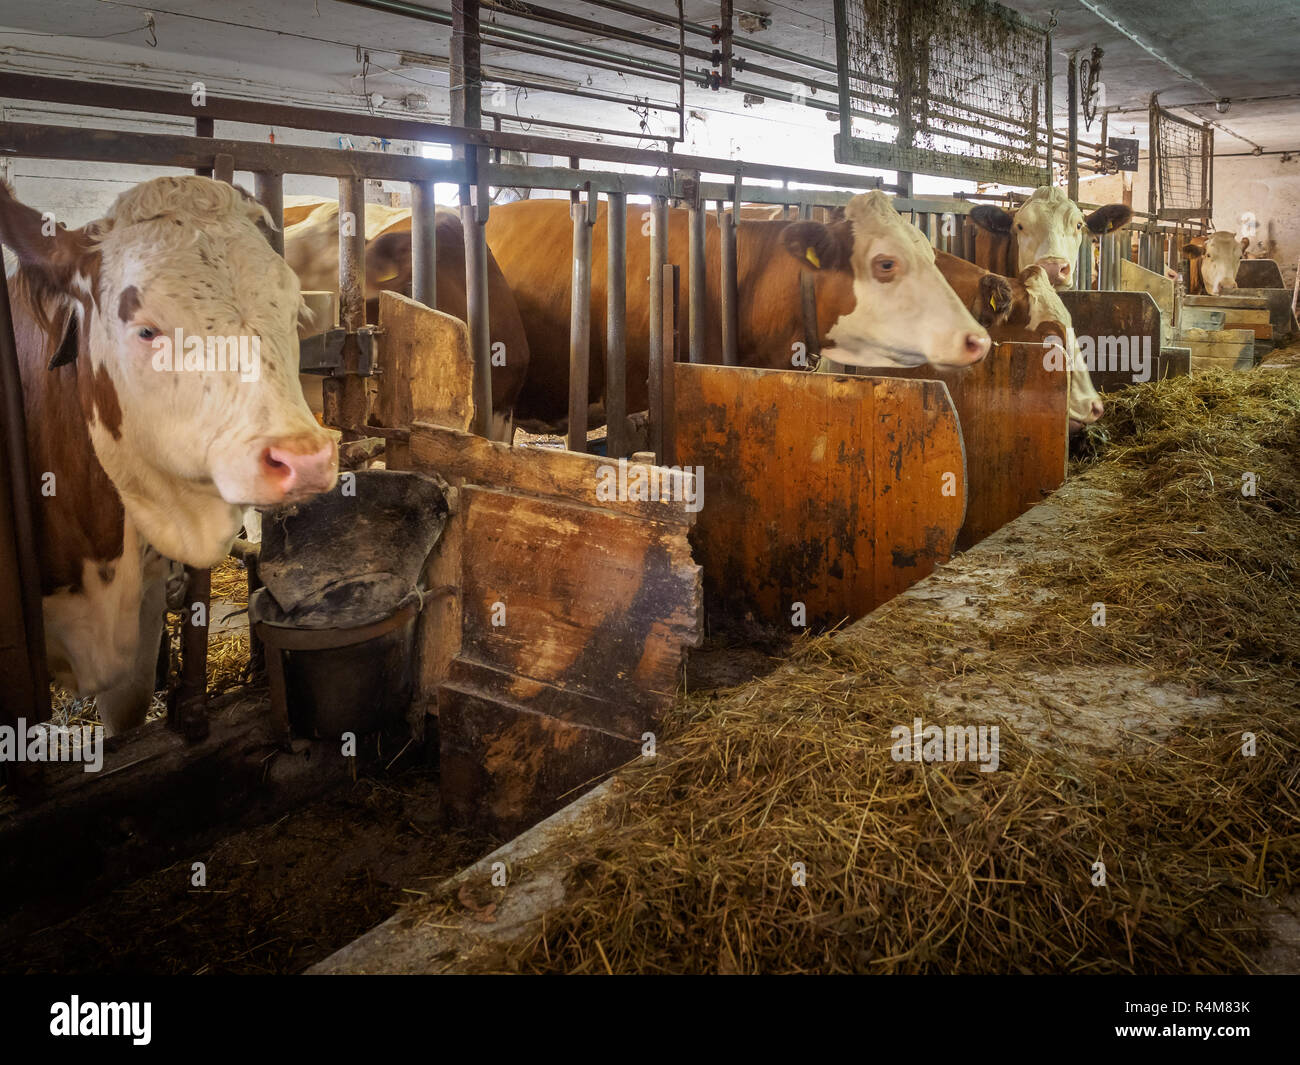 Milk cows in an rustic cowshed at a small austrian dairy farm weit for their feed - Stock Image